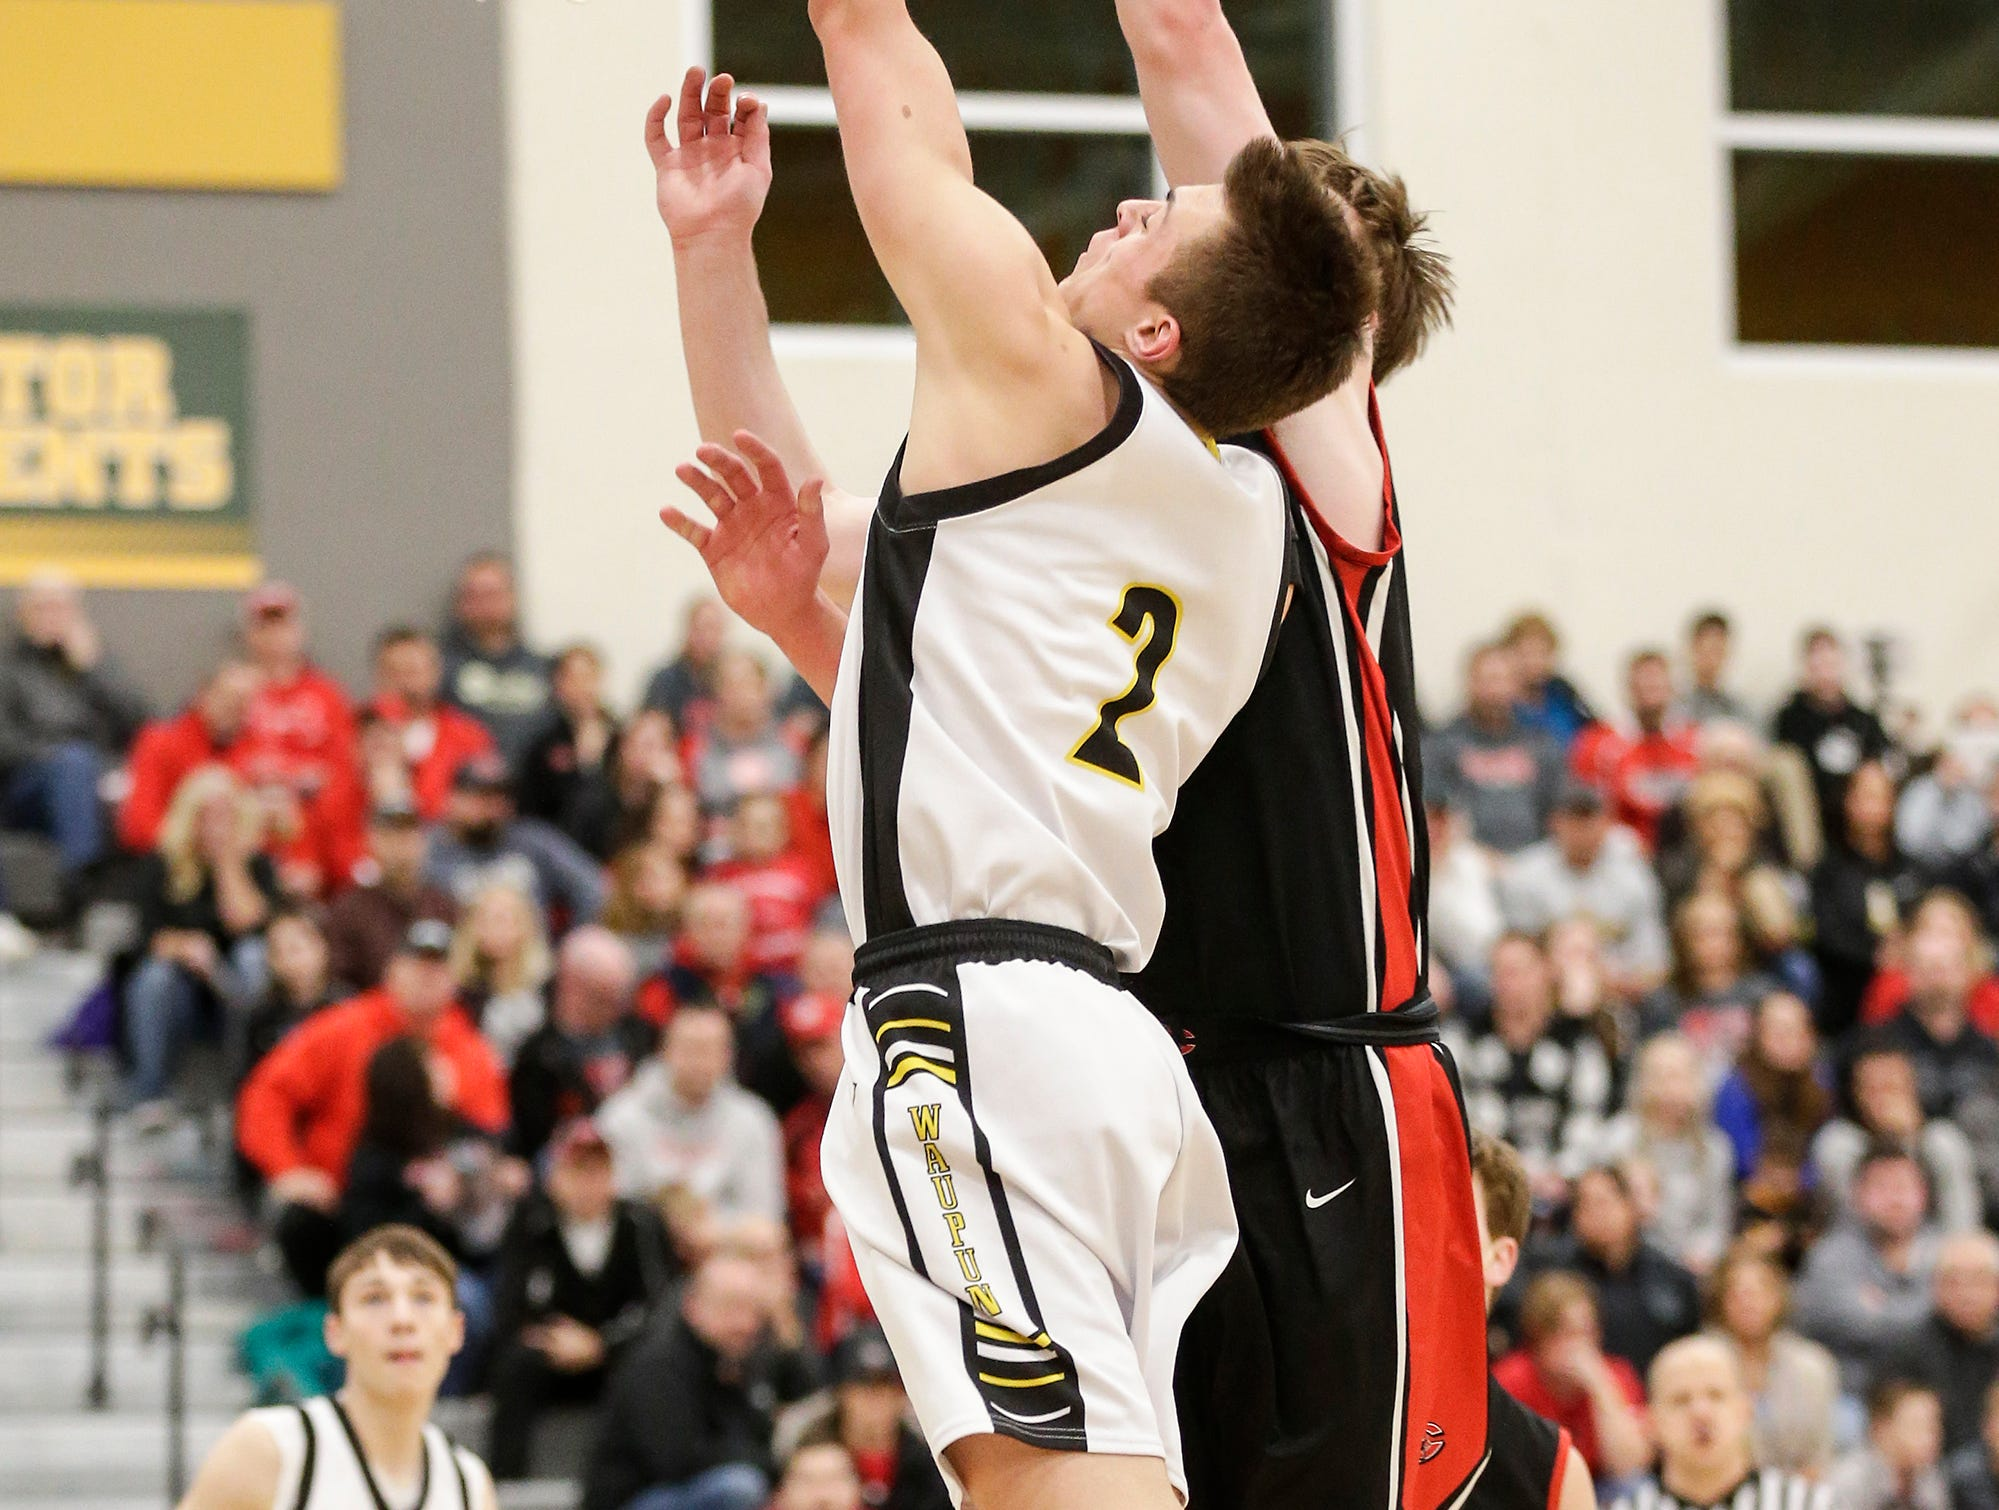 Waupun High School boys basketball's Trevor VandeZande goes up for a basket against Columbus High School's Ben Emler during their WIAA division 3 sectional semi-final game Thursday, March 7, 2019 in Beaver Dam, Wis. Waupun won the game 79-36. Doug Raflik/USA TODAY NETWORK-Wisconsin